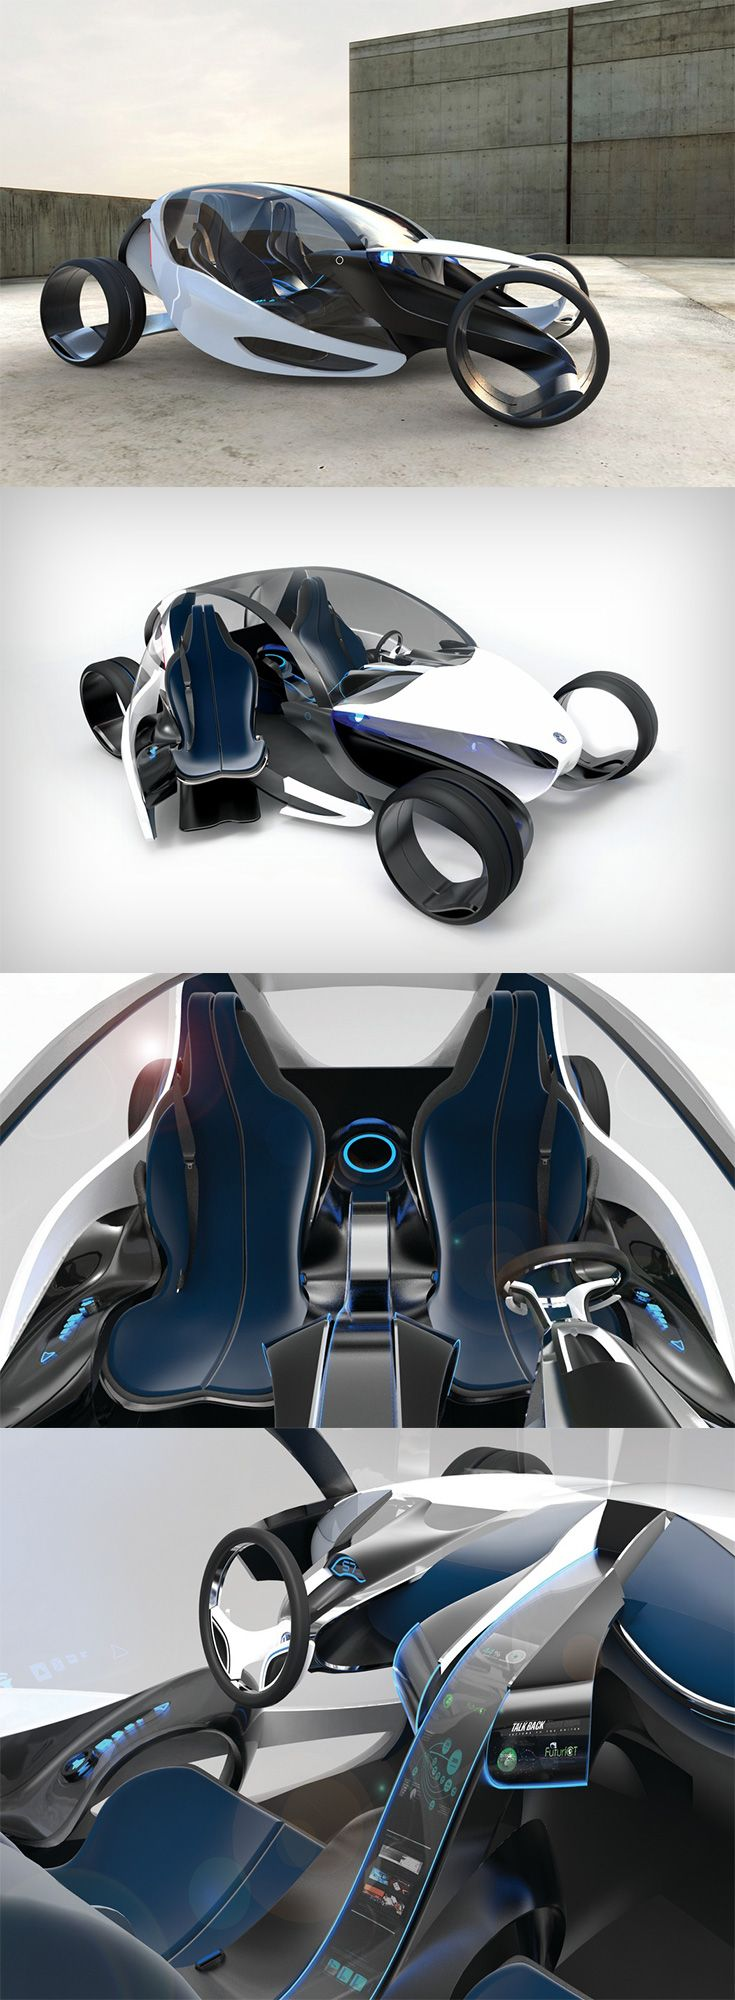 The 'E-legance' shows innovative thinking of a product experience even though it is a futuristic design, like the Opel-H the innovation lies in the doors of the vehicle...READ MORE at Yanko Design !